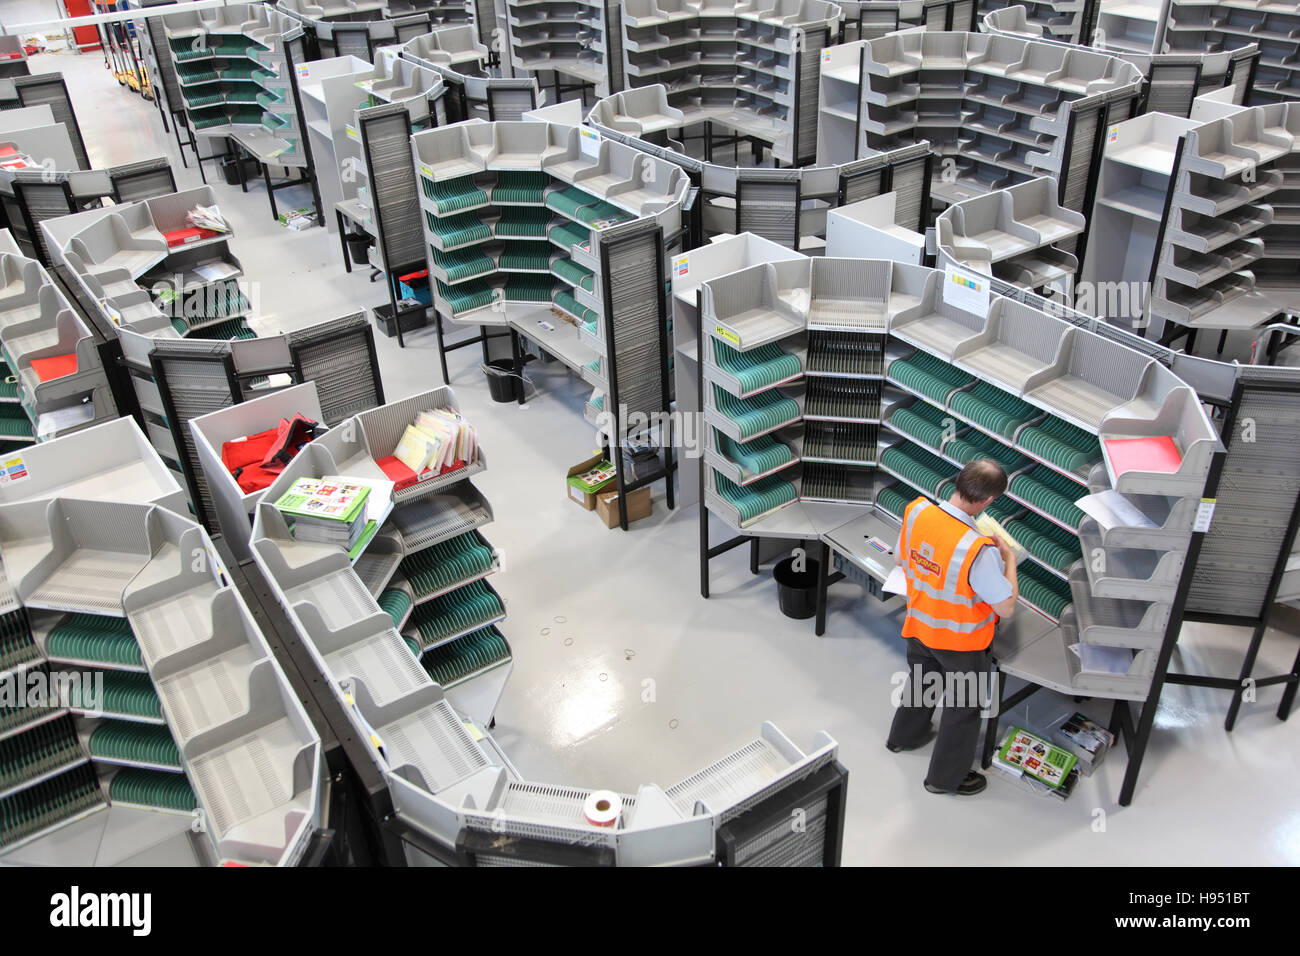 A single postman works at a sorting desk in a new Post Office sorting office in Southern England, UK - Stock Image